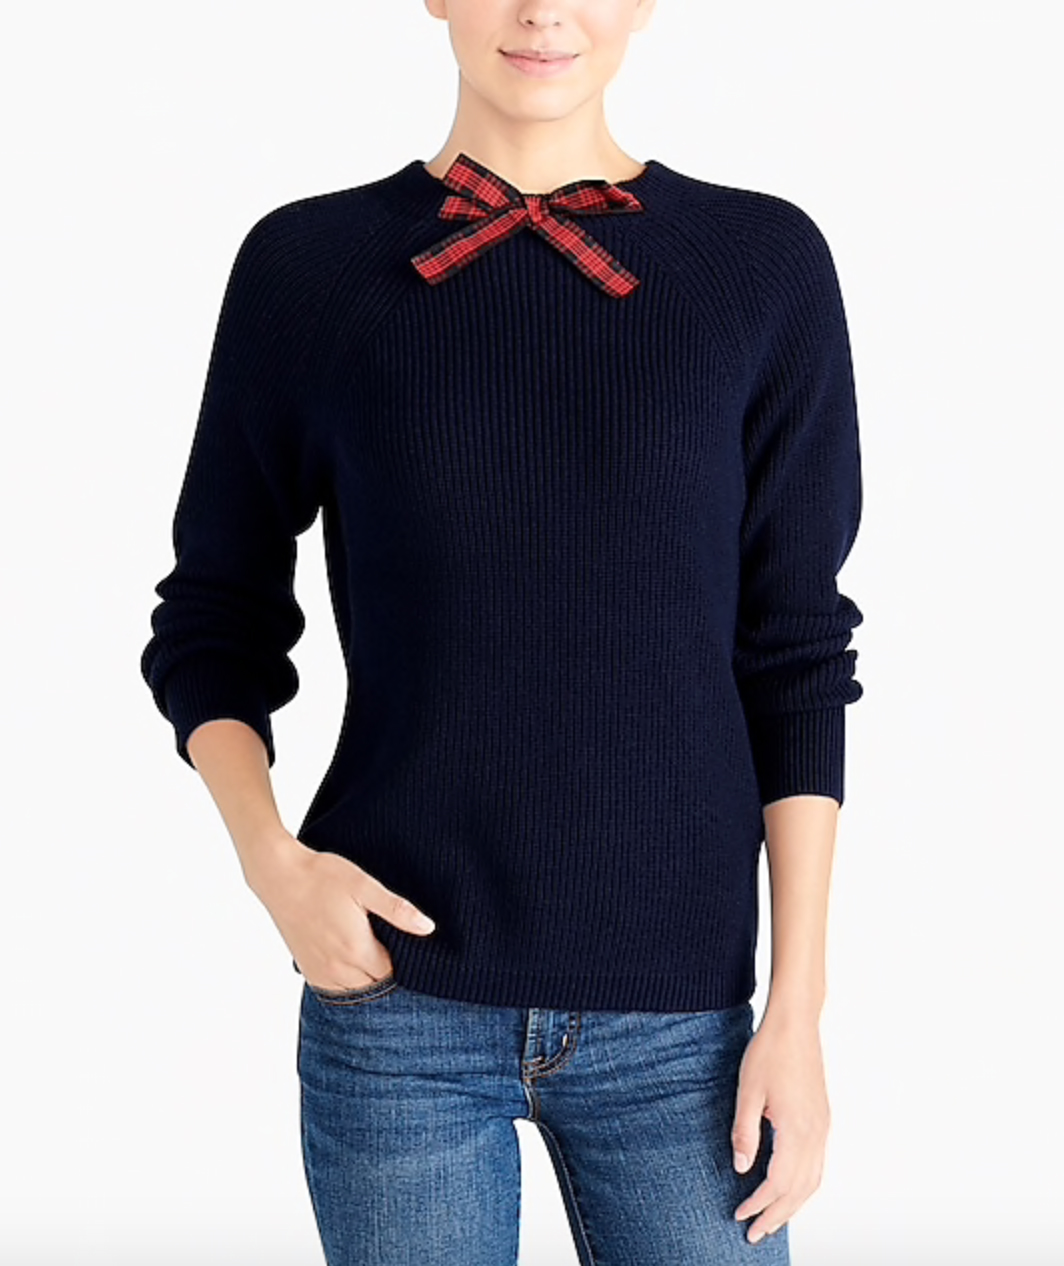 J.Crew Factory: Tartan Bow Sweater (Comes in solids, too.)